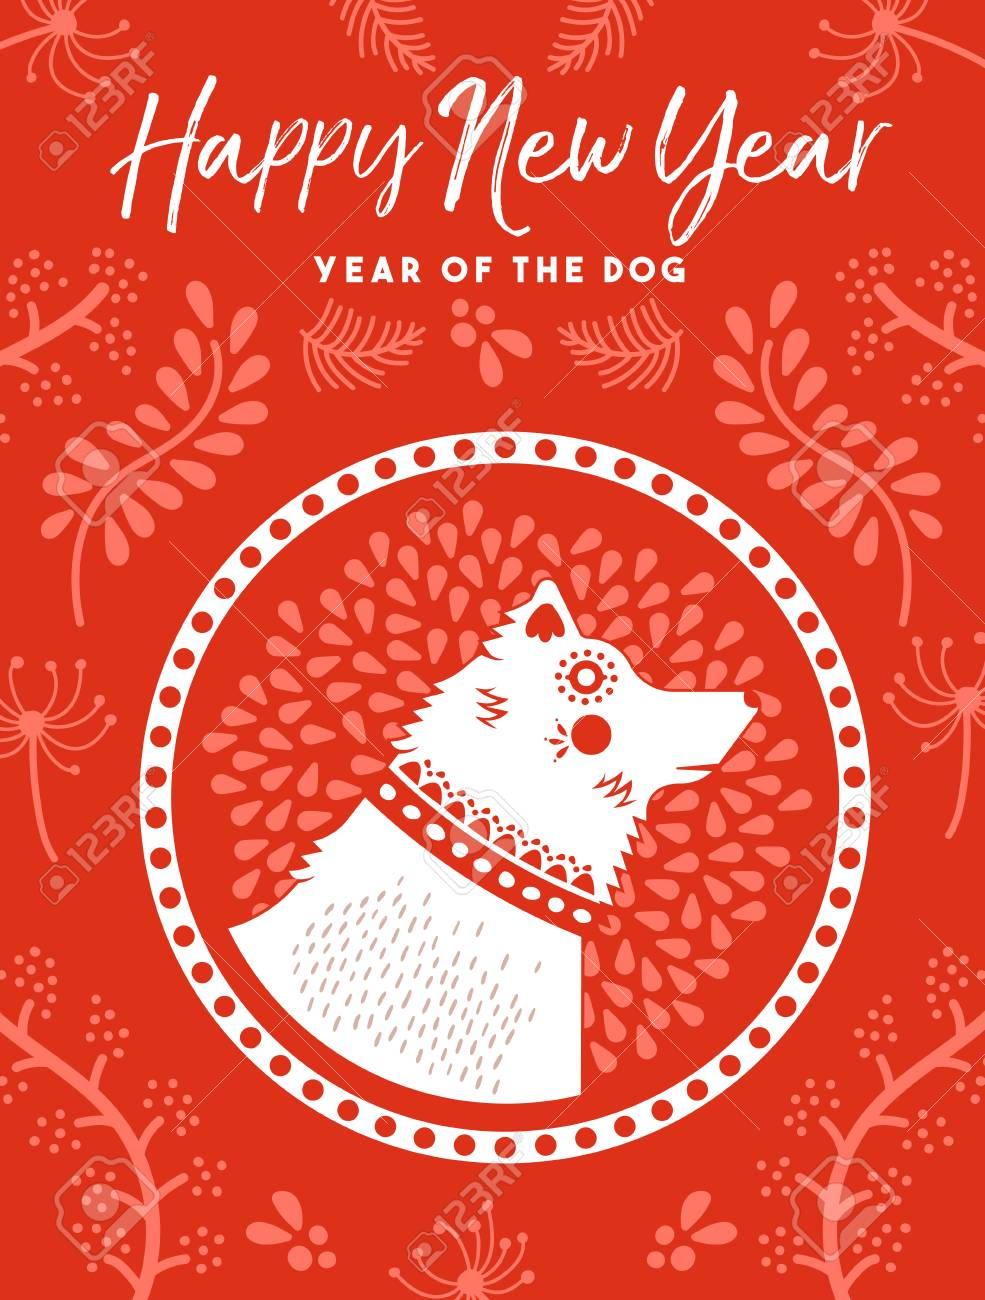 2018 happy chinese new year of the dog greeting card design with traditional red illustration and